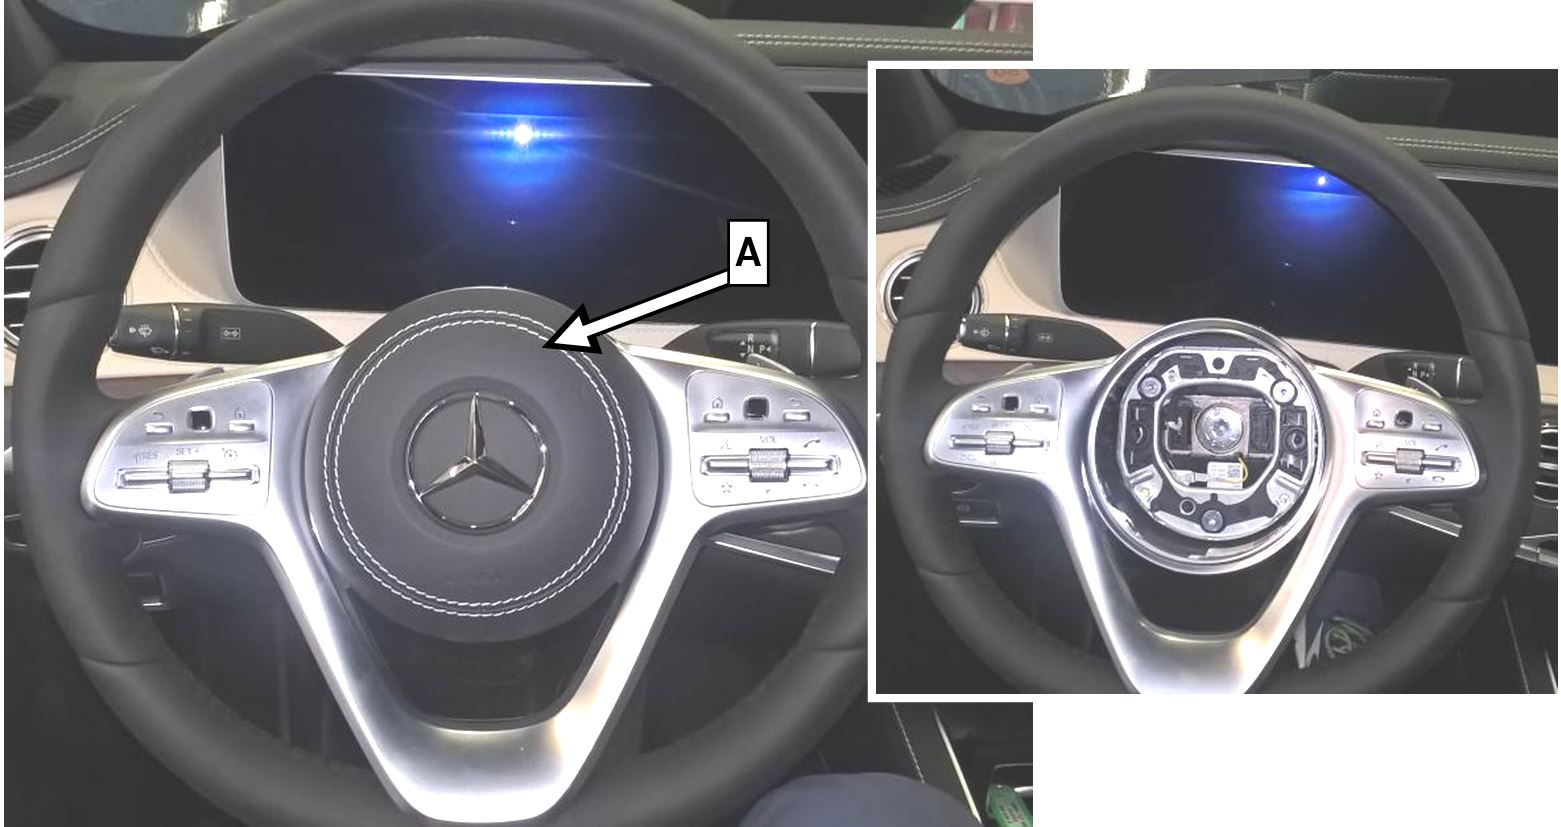 Are The 2015 S-class Steering Wheel Buttons Backlit At Night